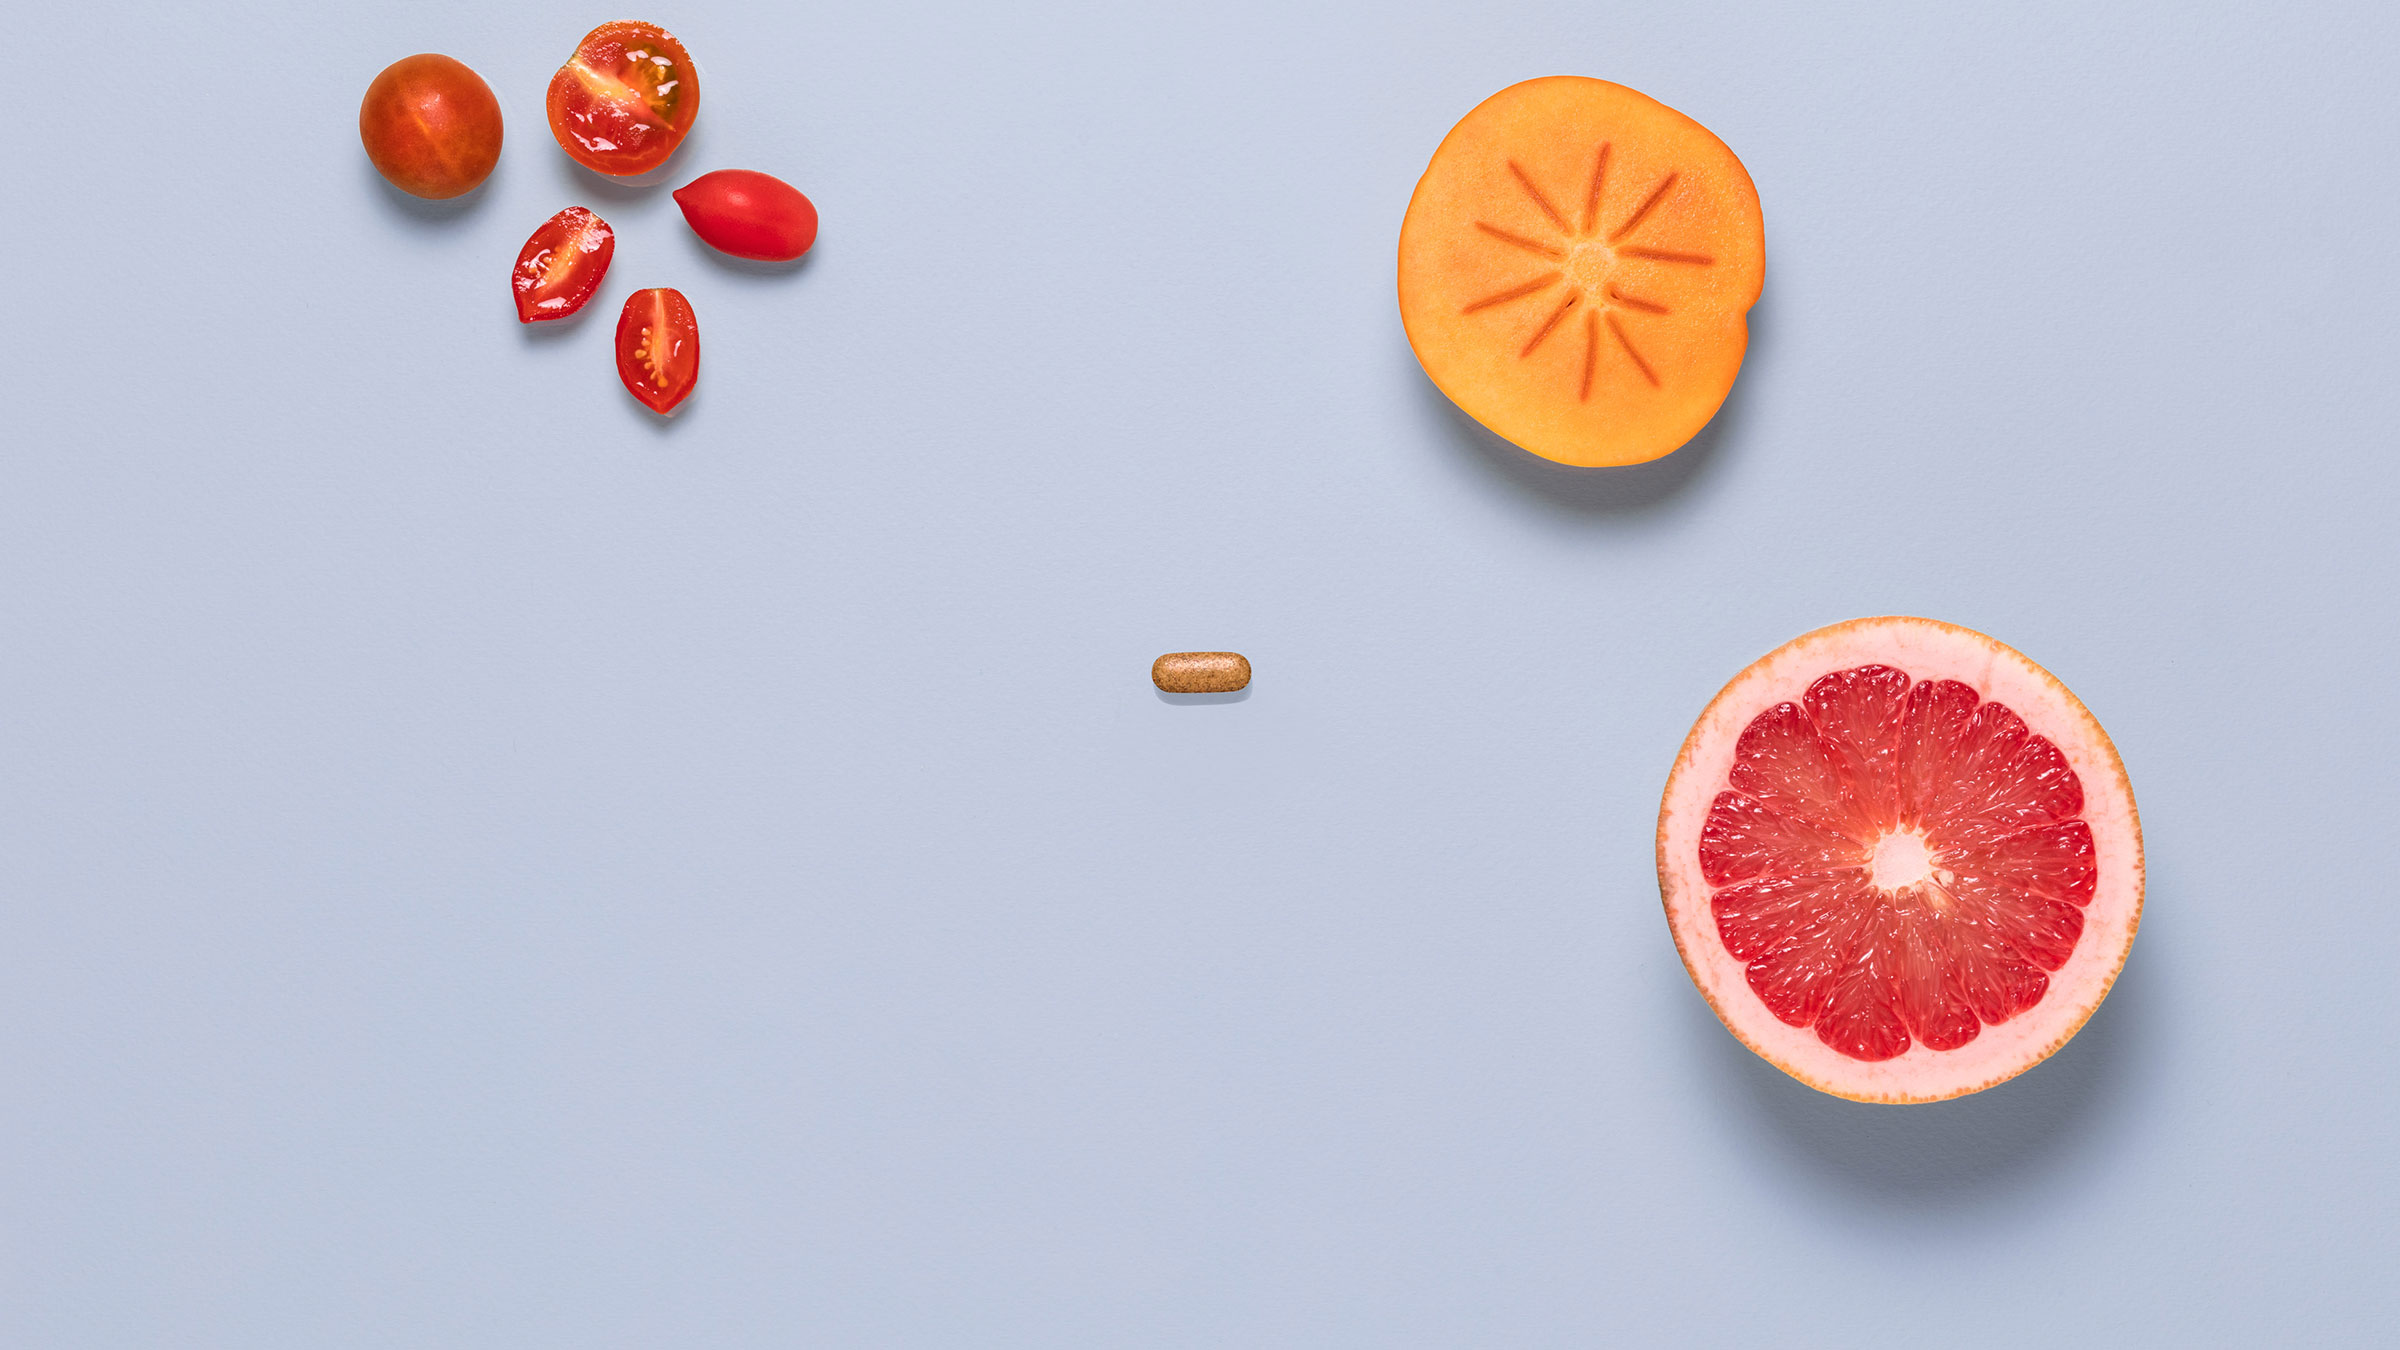 A photo of cherry tomatoes, cantaloupe, an orange slice, and a vitamin C pill laid flat.